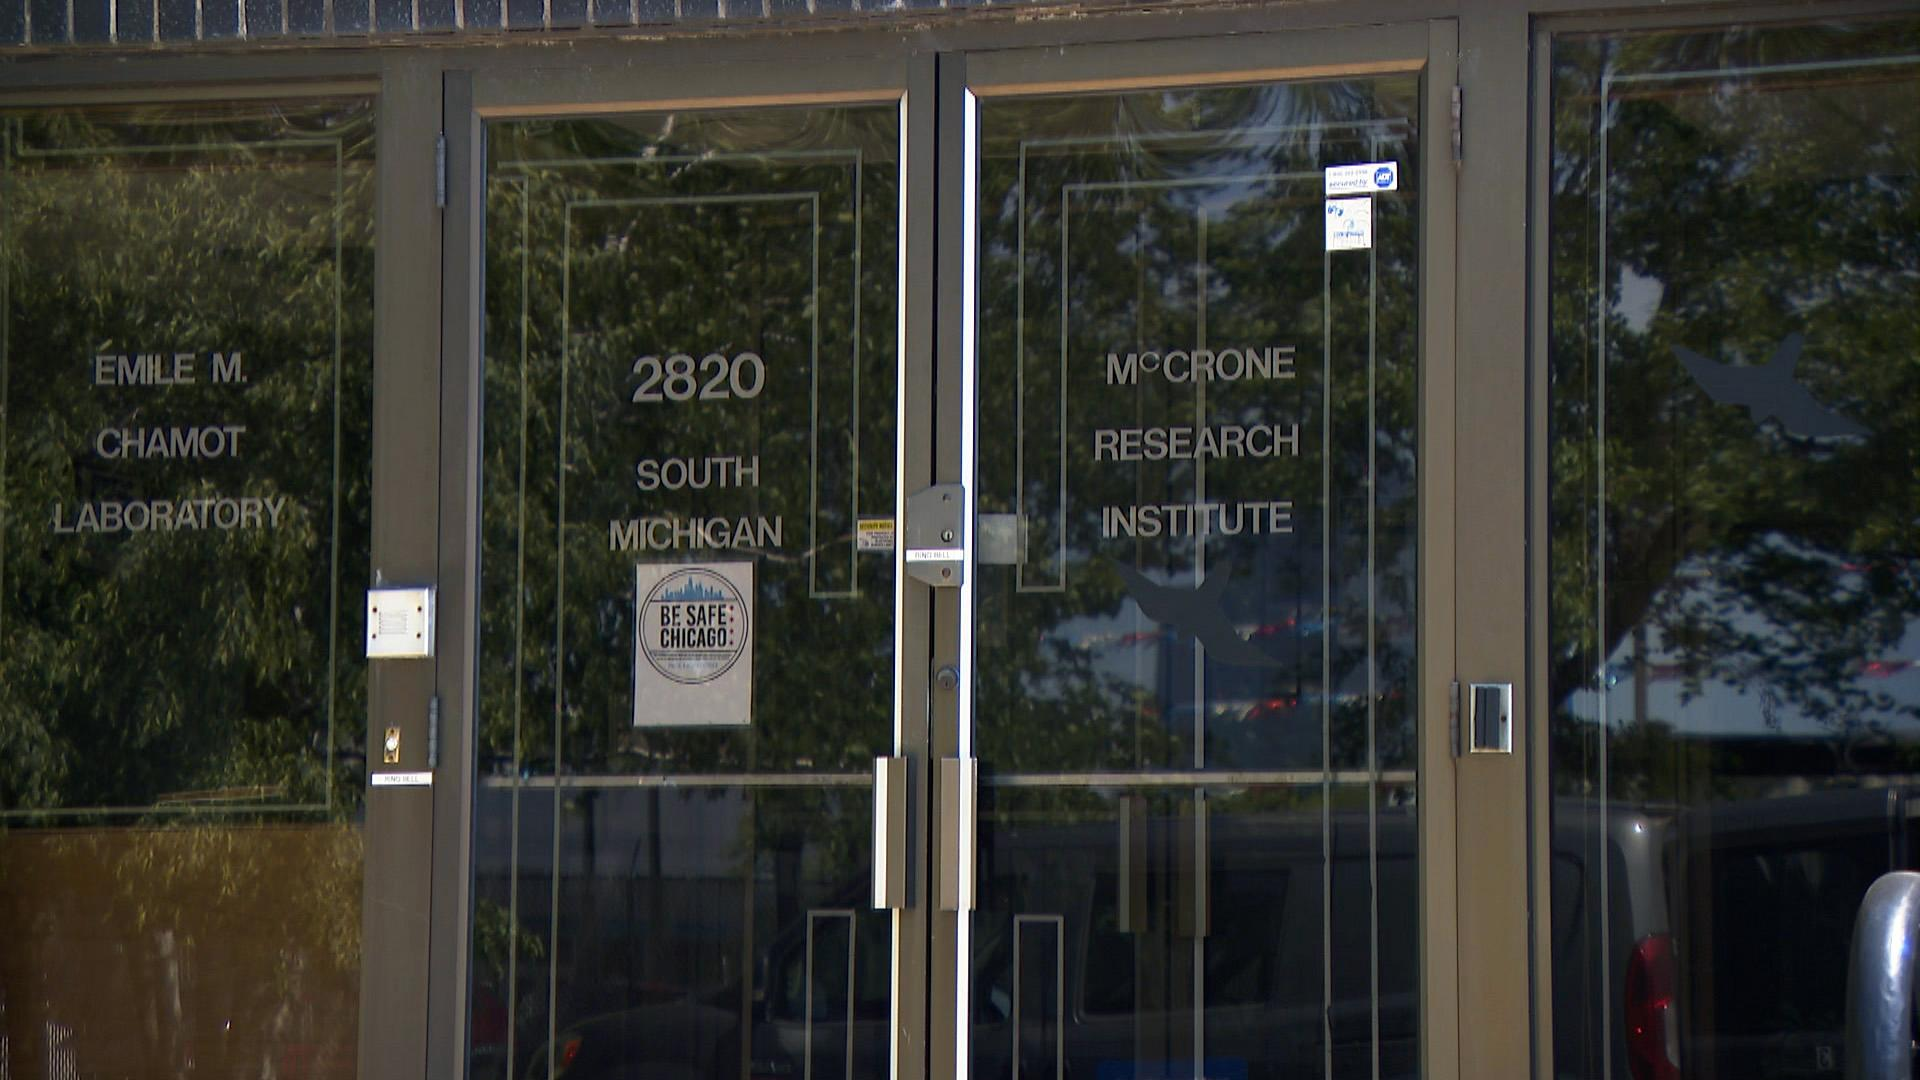 The McCrone Research Institute (WTTW News)